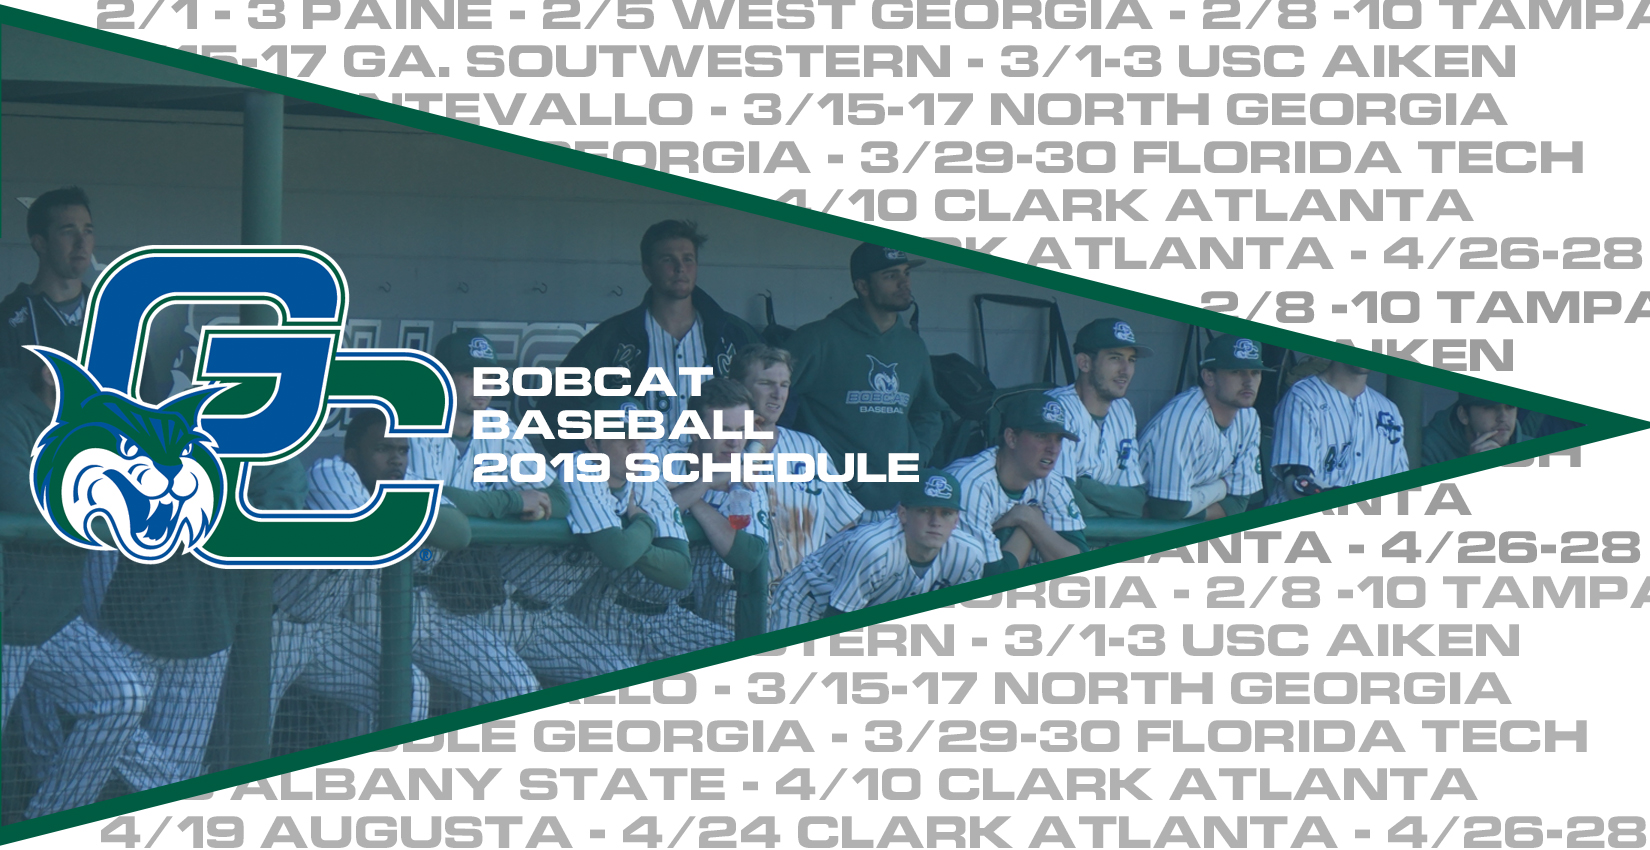 2019 Bobcat Baseball Schedule